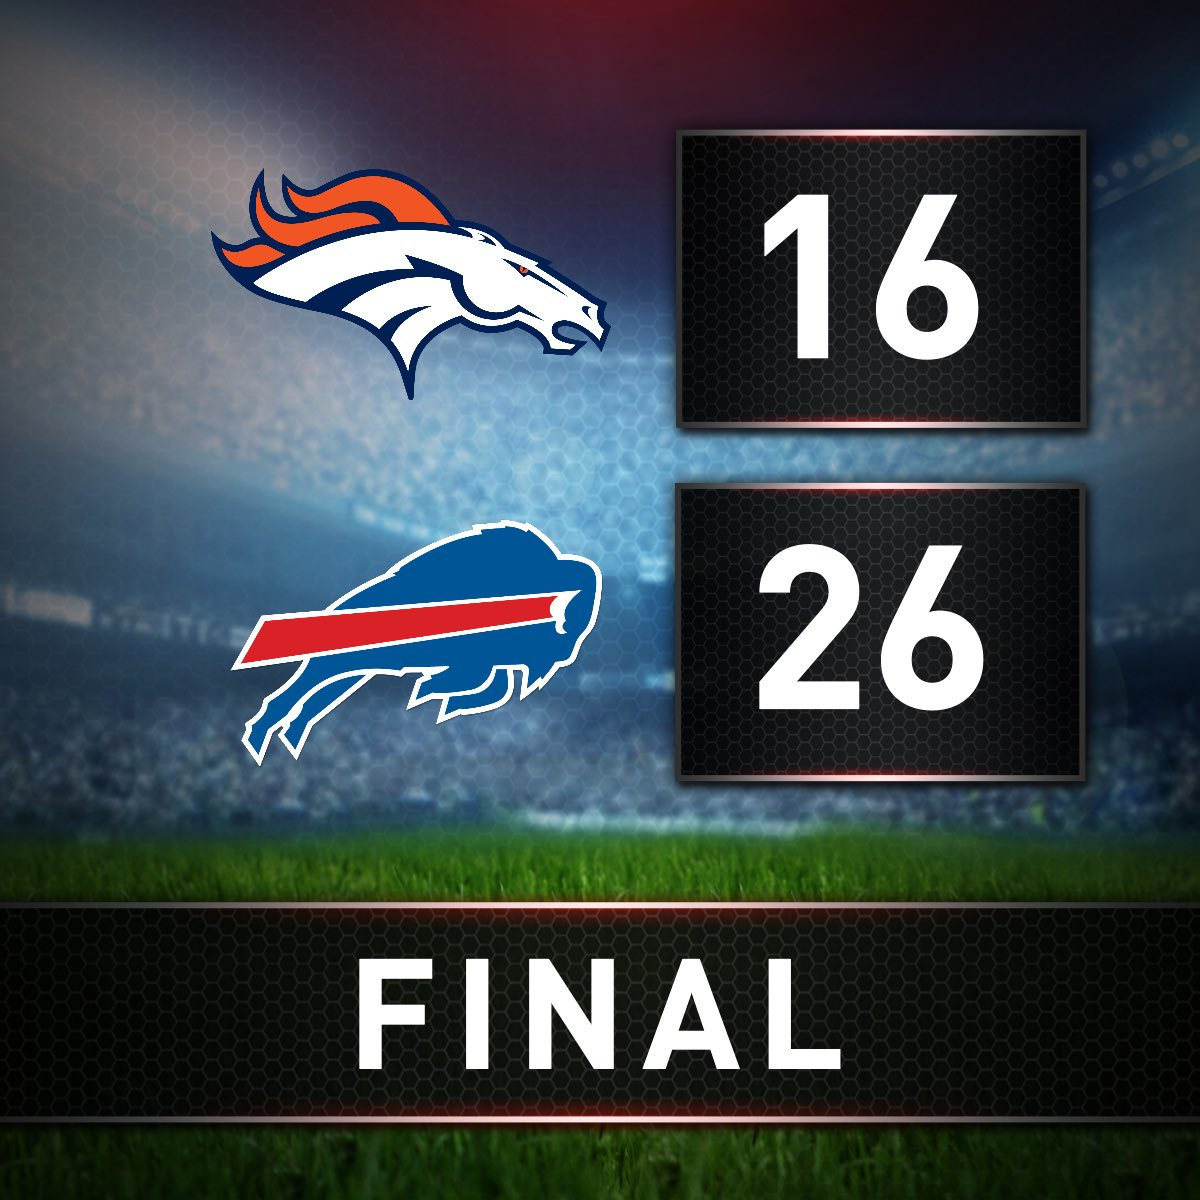 The #Bills are back in first place 👀 https://t.co/A1lTkMKZdp